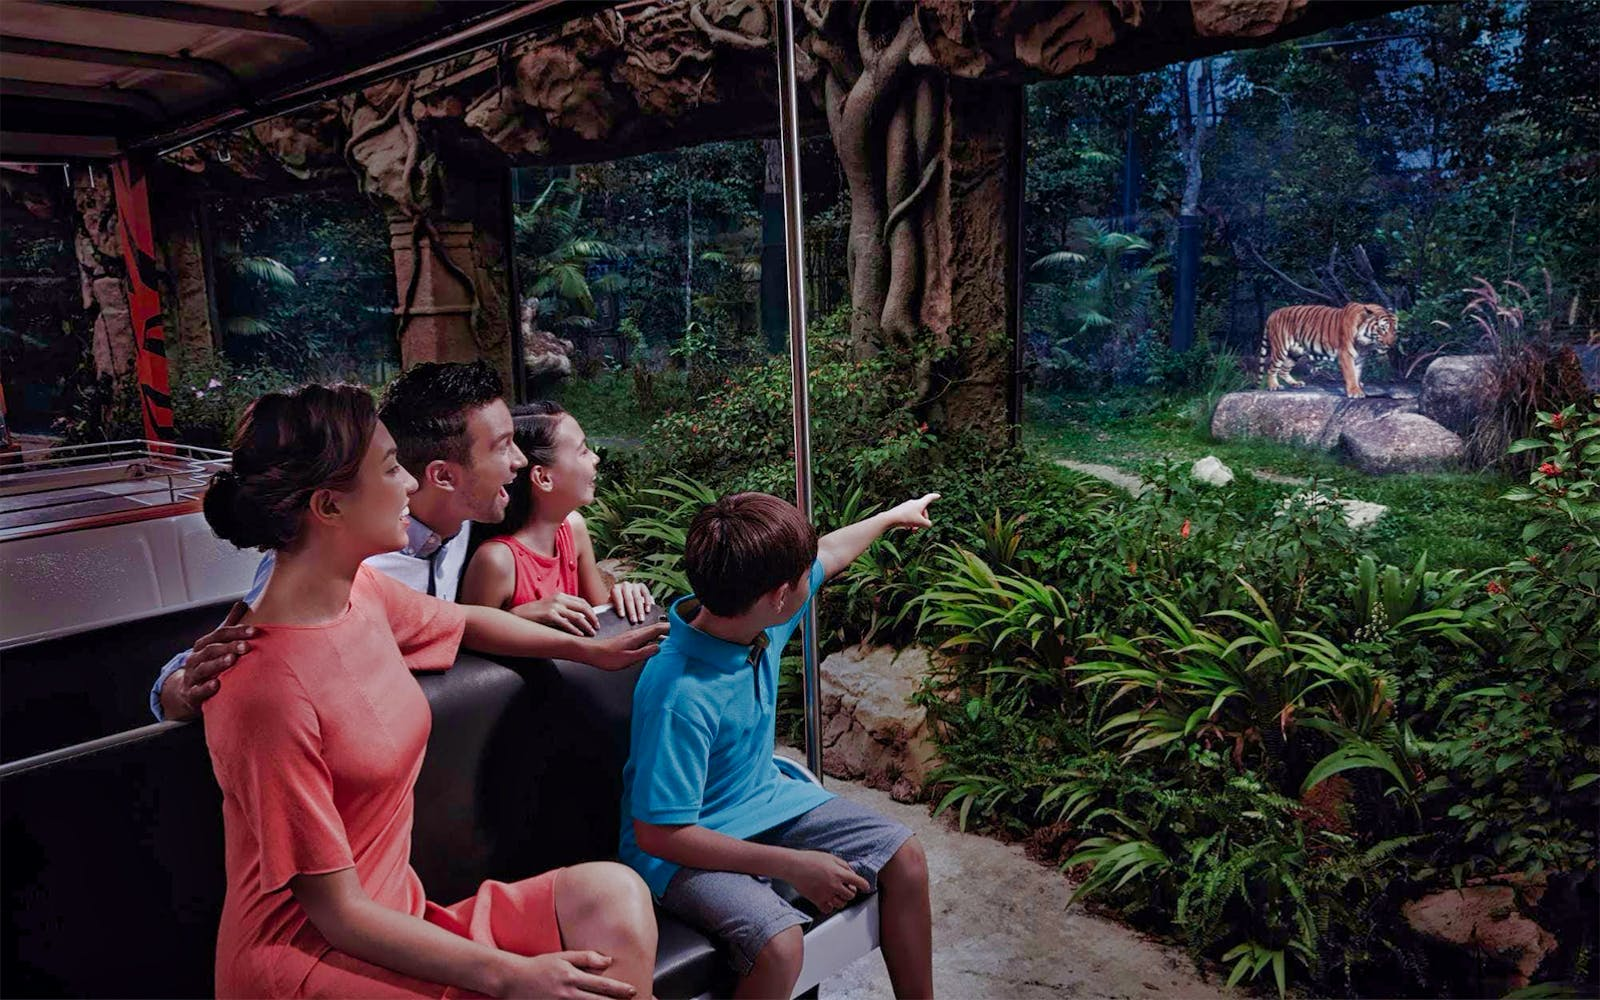 singapore night safari tickets with tram ride-3